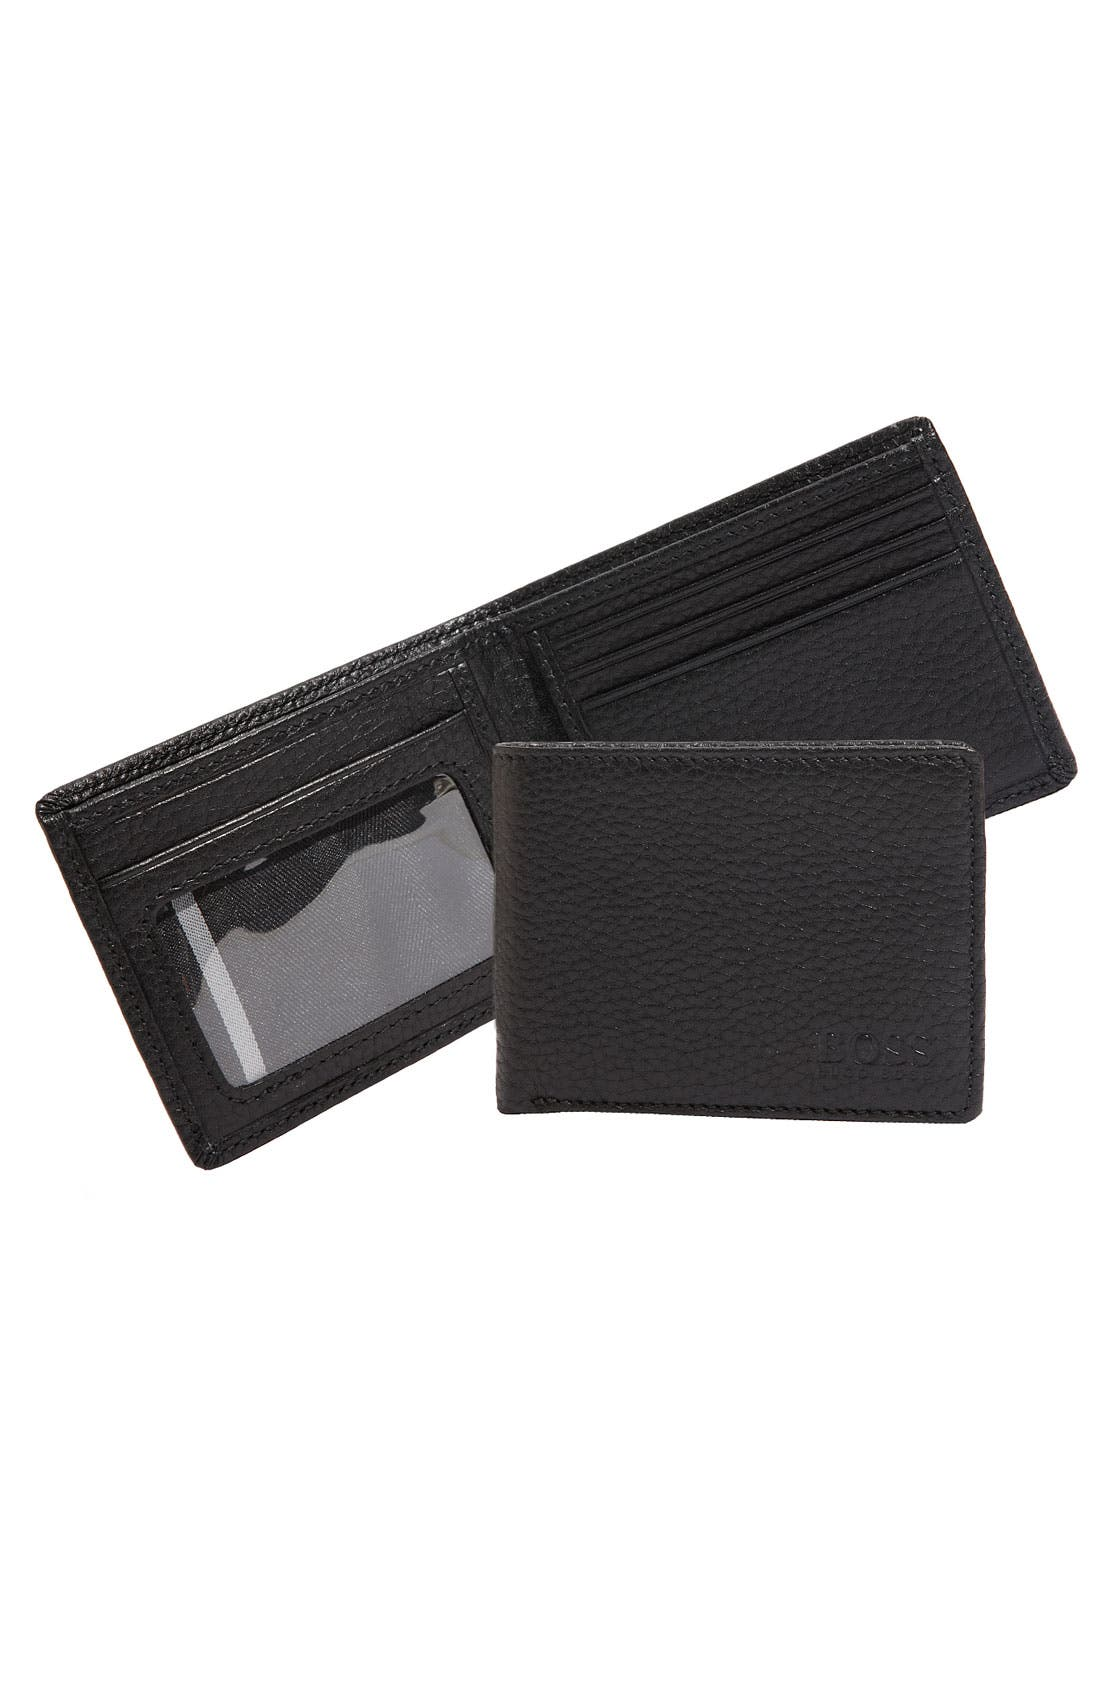 Alternate Image 1 Selected - BOSS Leather Bifold Wallet with ID Window